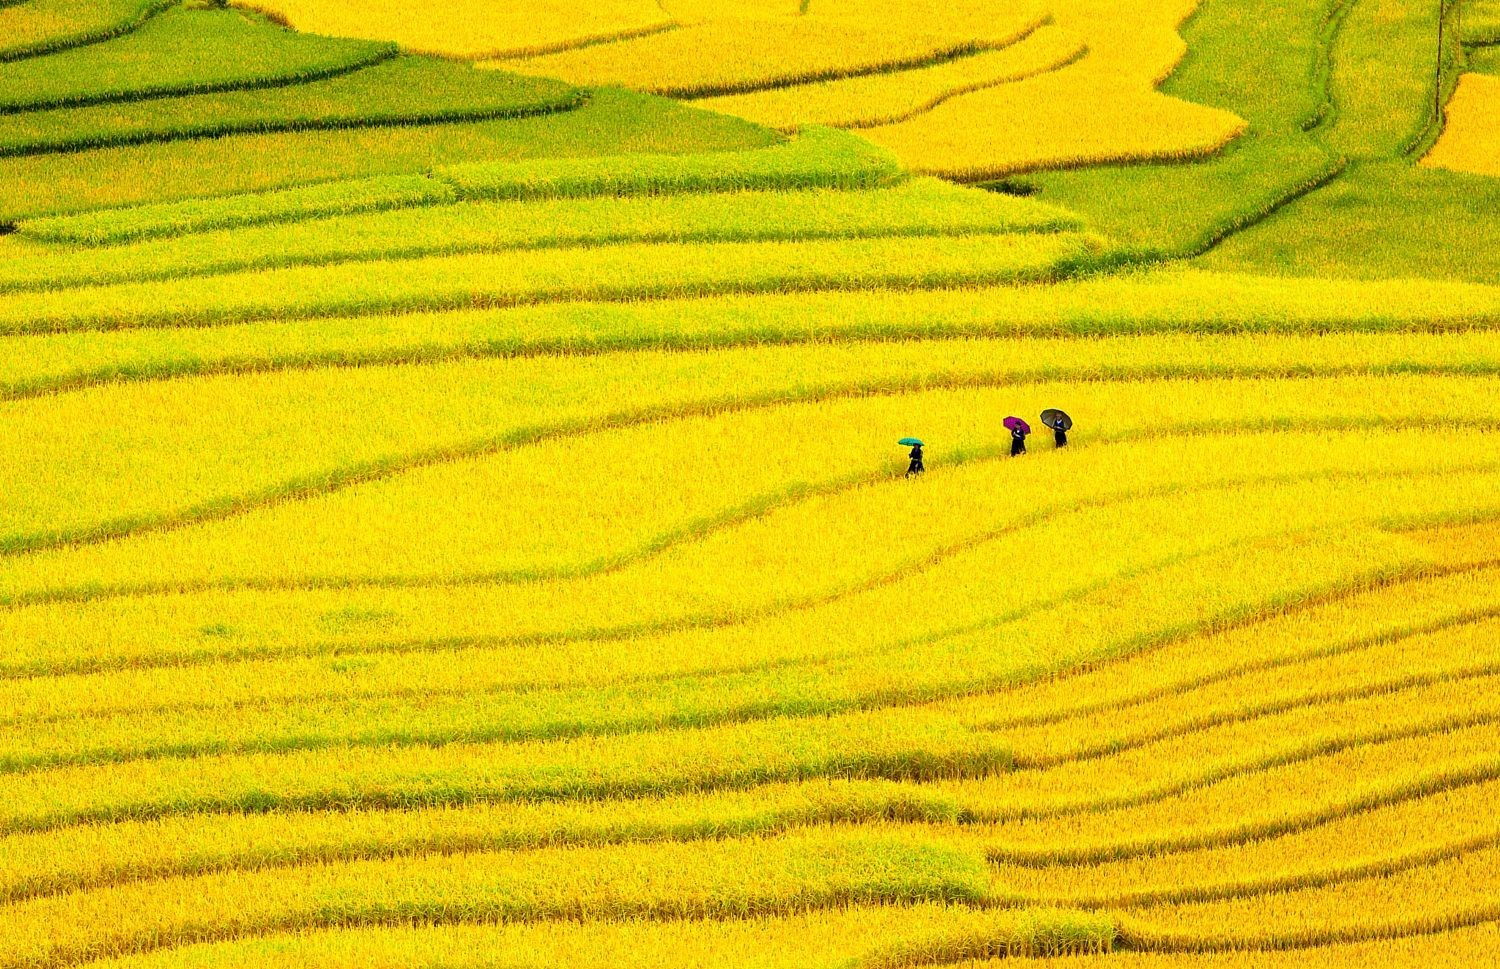 Best time to see golden rice fields in Vietnam: from Sept to Oct